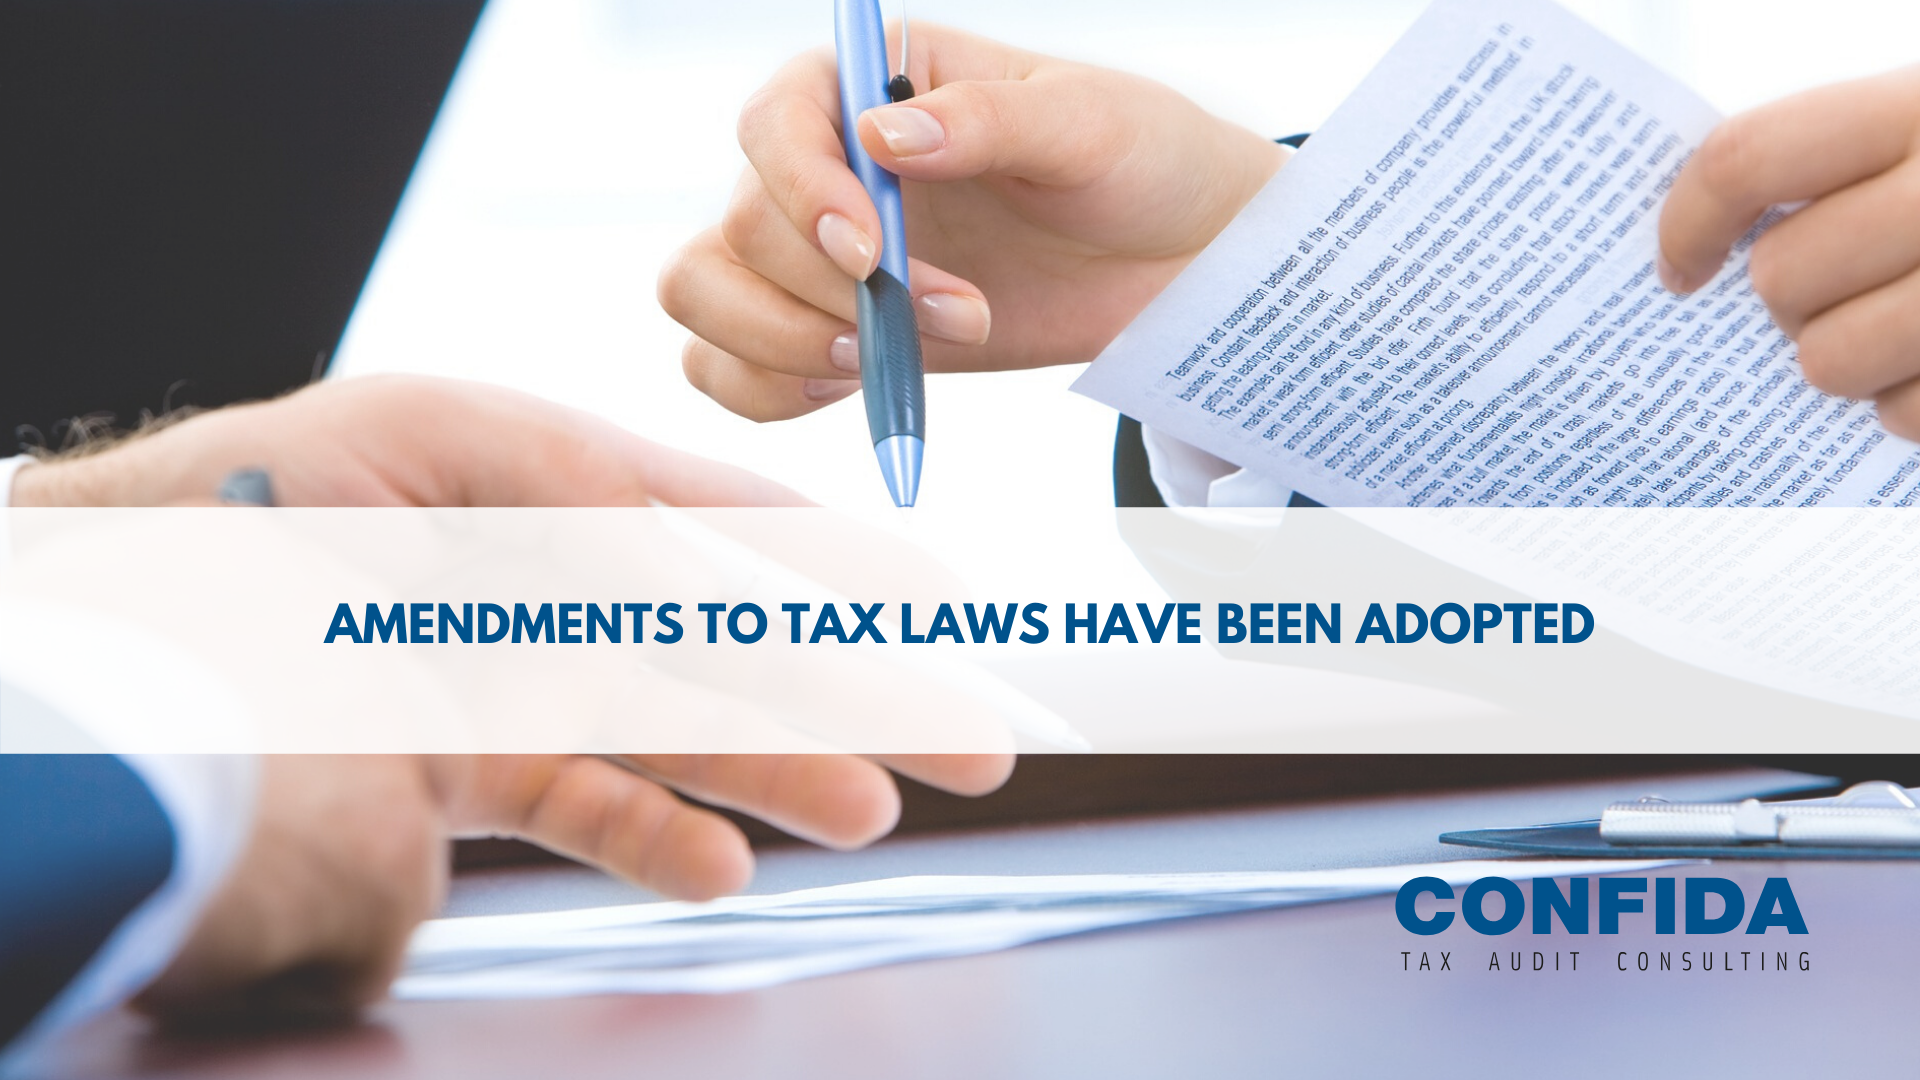 Amendments to tax laws have been adopted